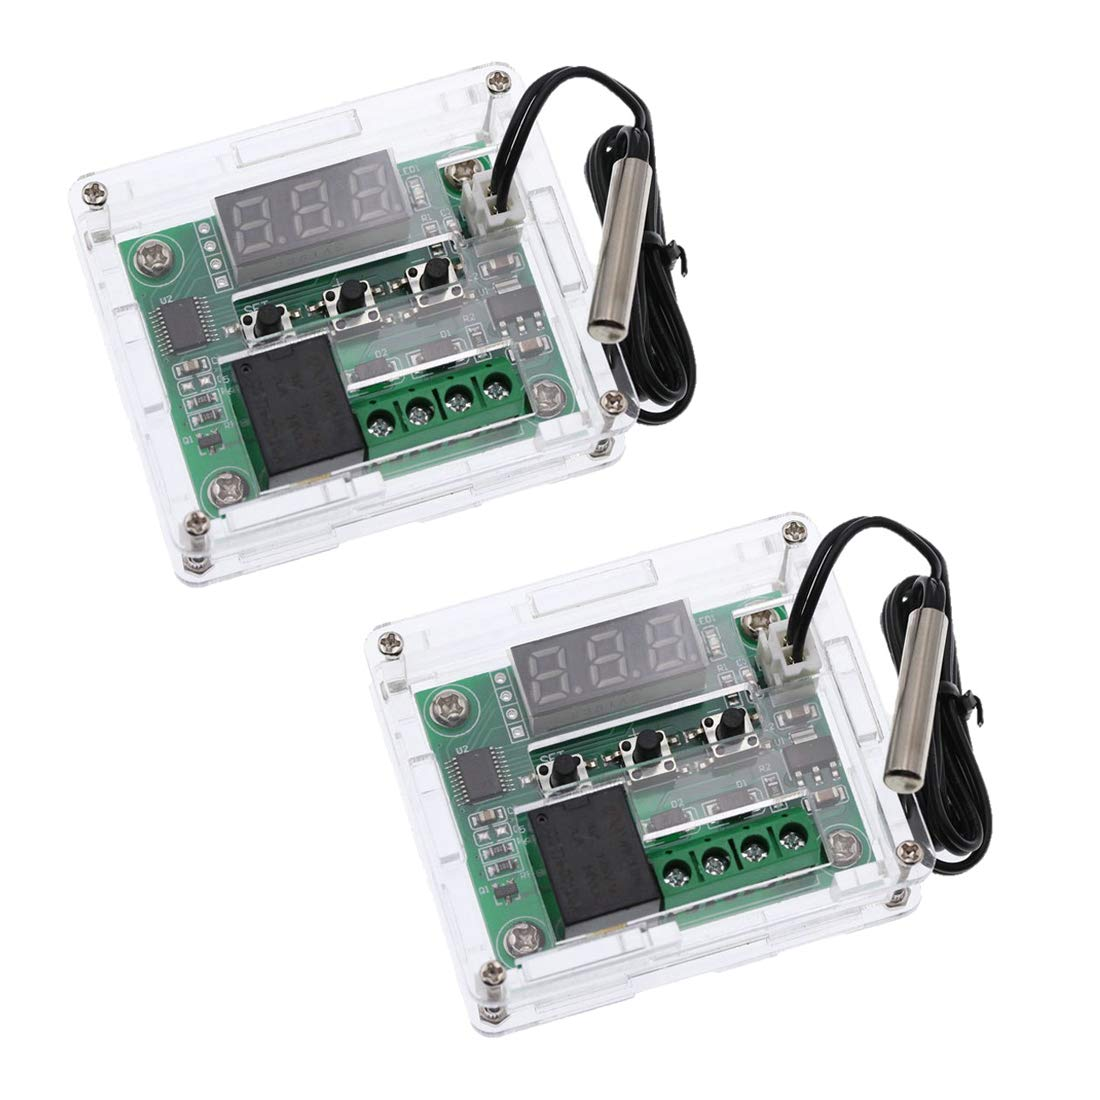 HiLetgo 2pcs W1209 with Case 12V DC Digital Temperature Controller Board Micro Digital Thermostat -50-110°C Electronic Temperature Temp Control Module Switch with 10A One-Channel Relay and Waterproof